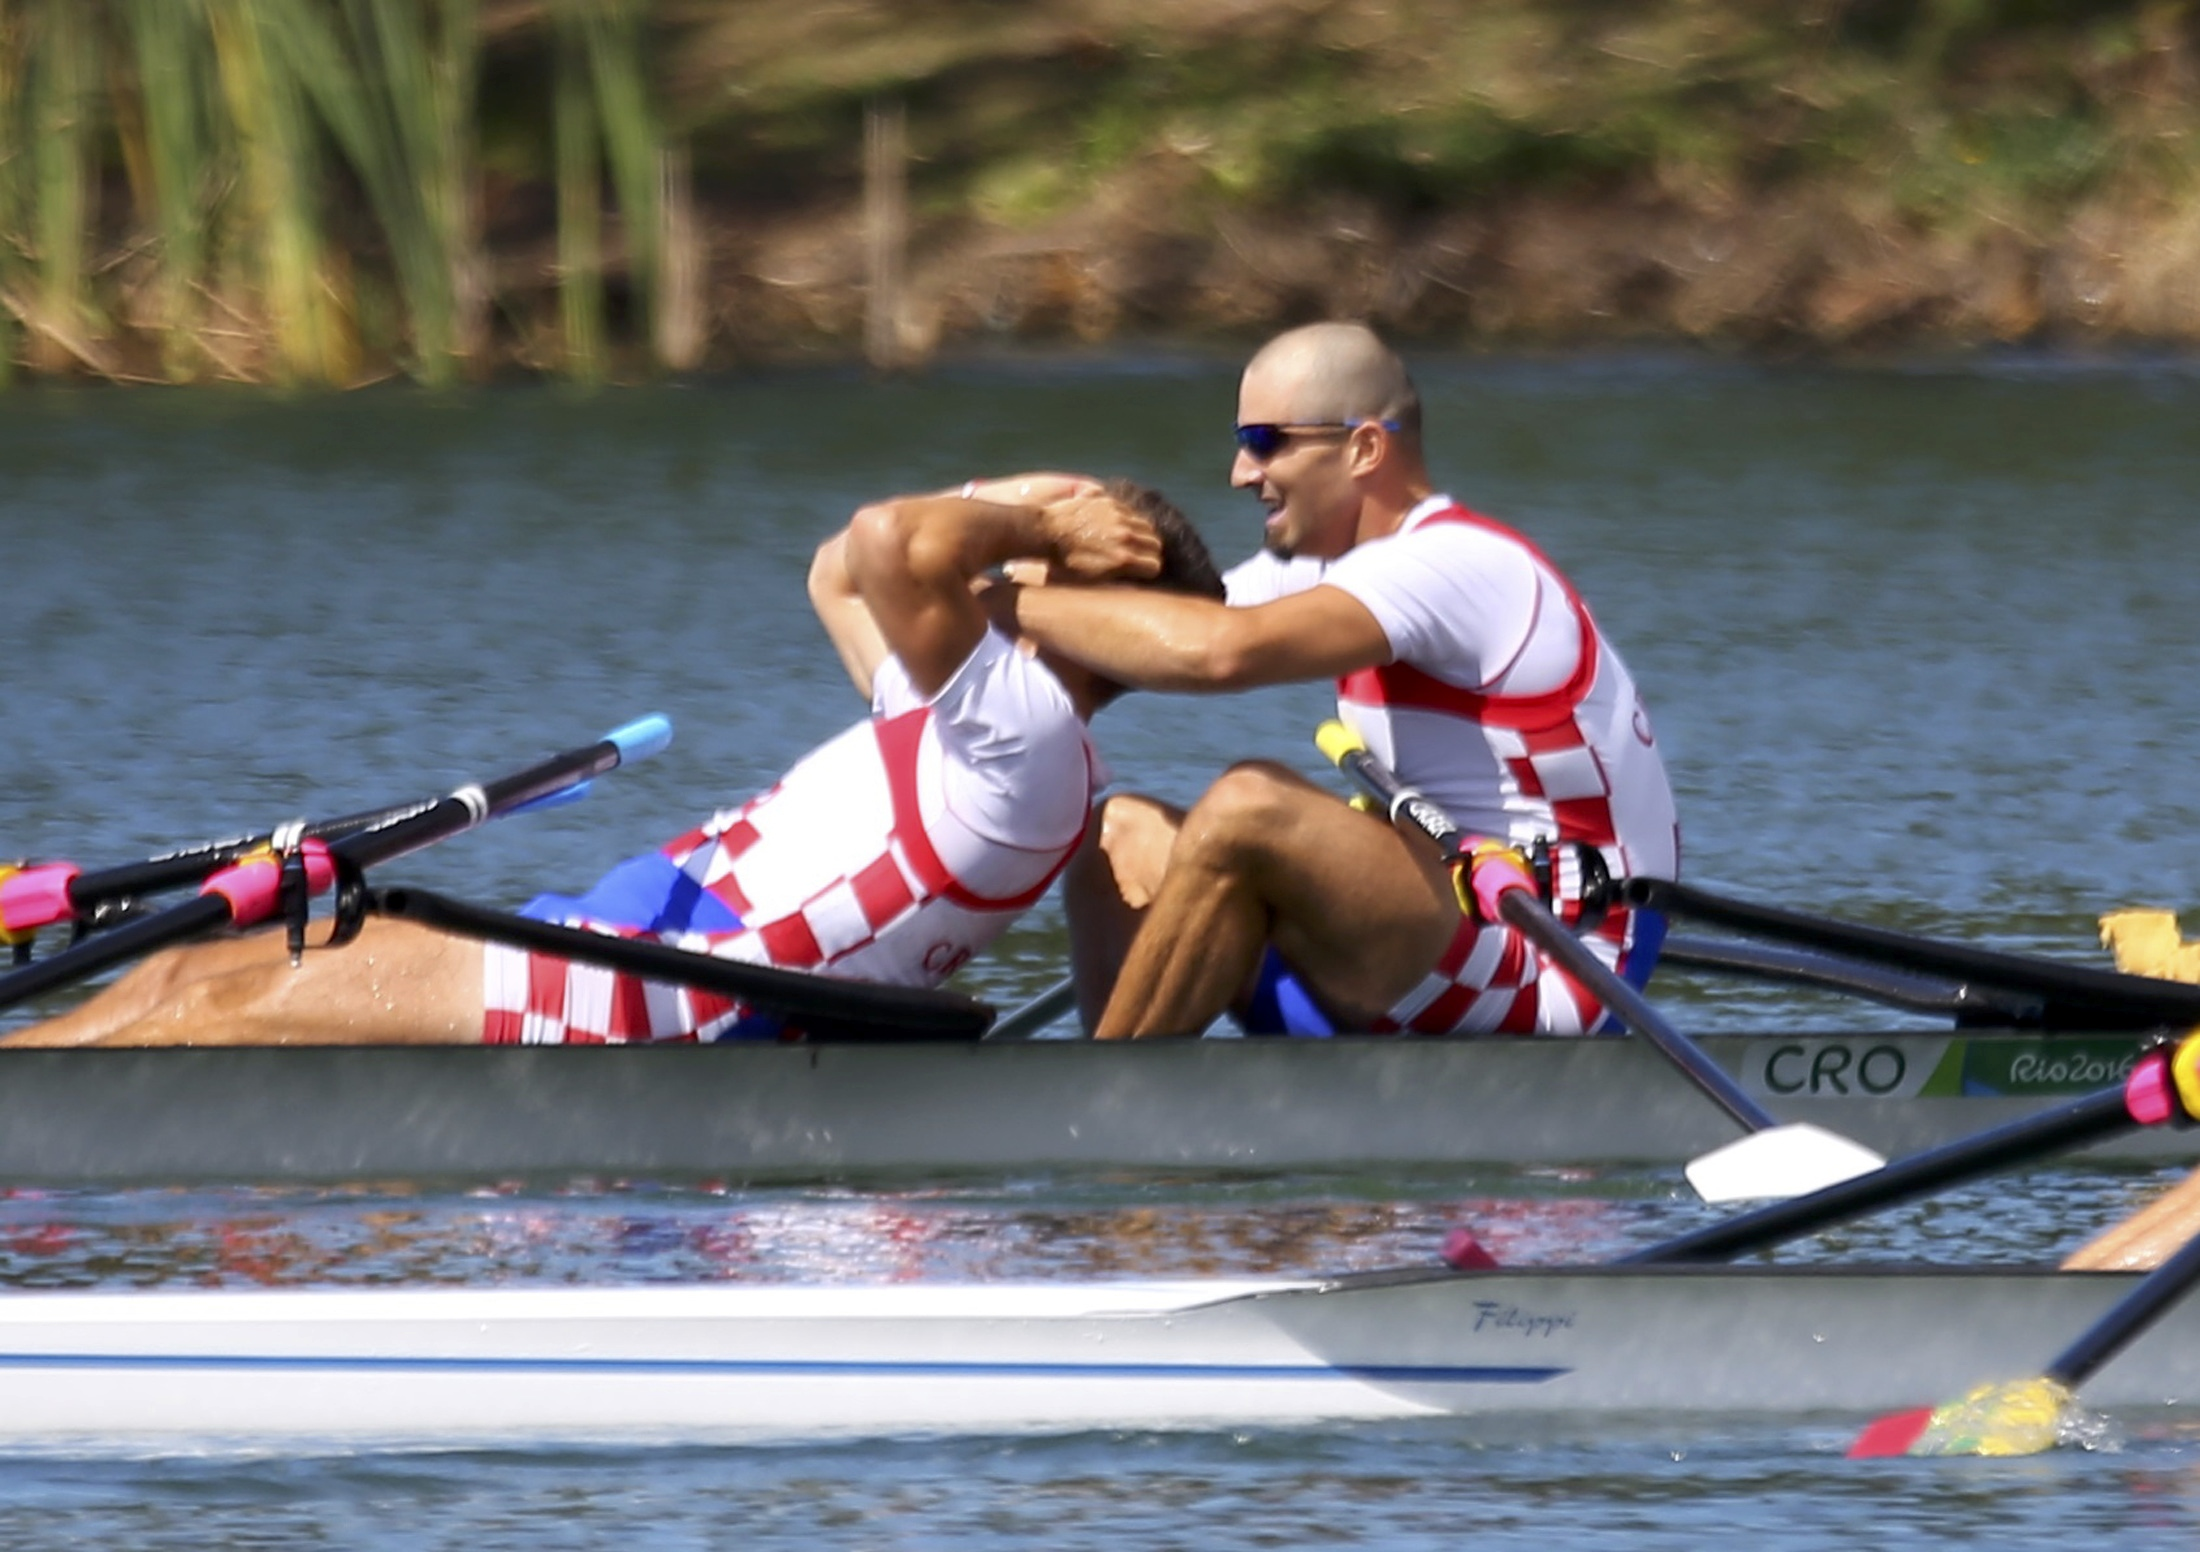 2016 Rio Olympics - Rowing - Final - Men's Double Sculls Final A - Lagoa Stadium - Rio De Janeiro, Brazil - 11/08/2016. Martin Sinkovic (CRO) of Croatia and Valent Sinkovic (CRO) of Croatia react after winning gold medals at the finish. REUTERS/Murad Sezer FOR EDITORIAL USE ONLY. NOT FOR SALE FOR MARKETING OR ADVERTISING CAMPAIGNS.   - RTSMNVB